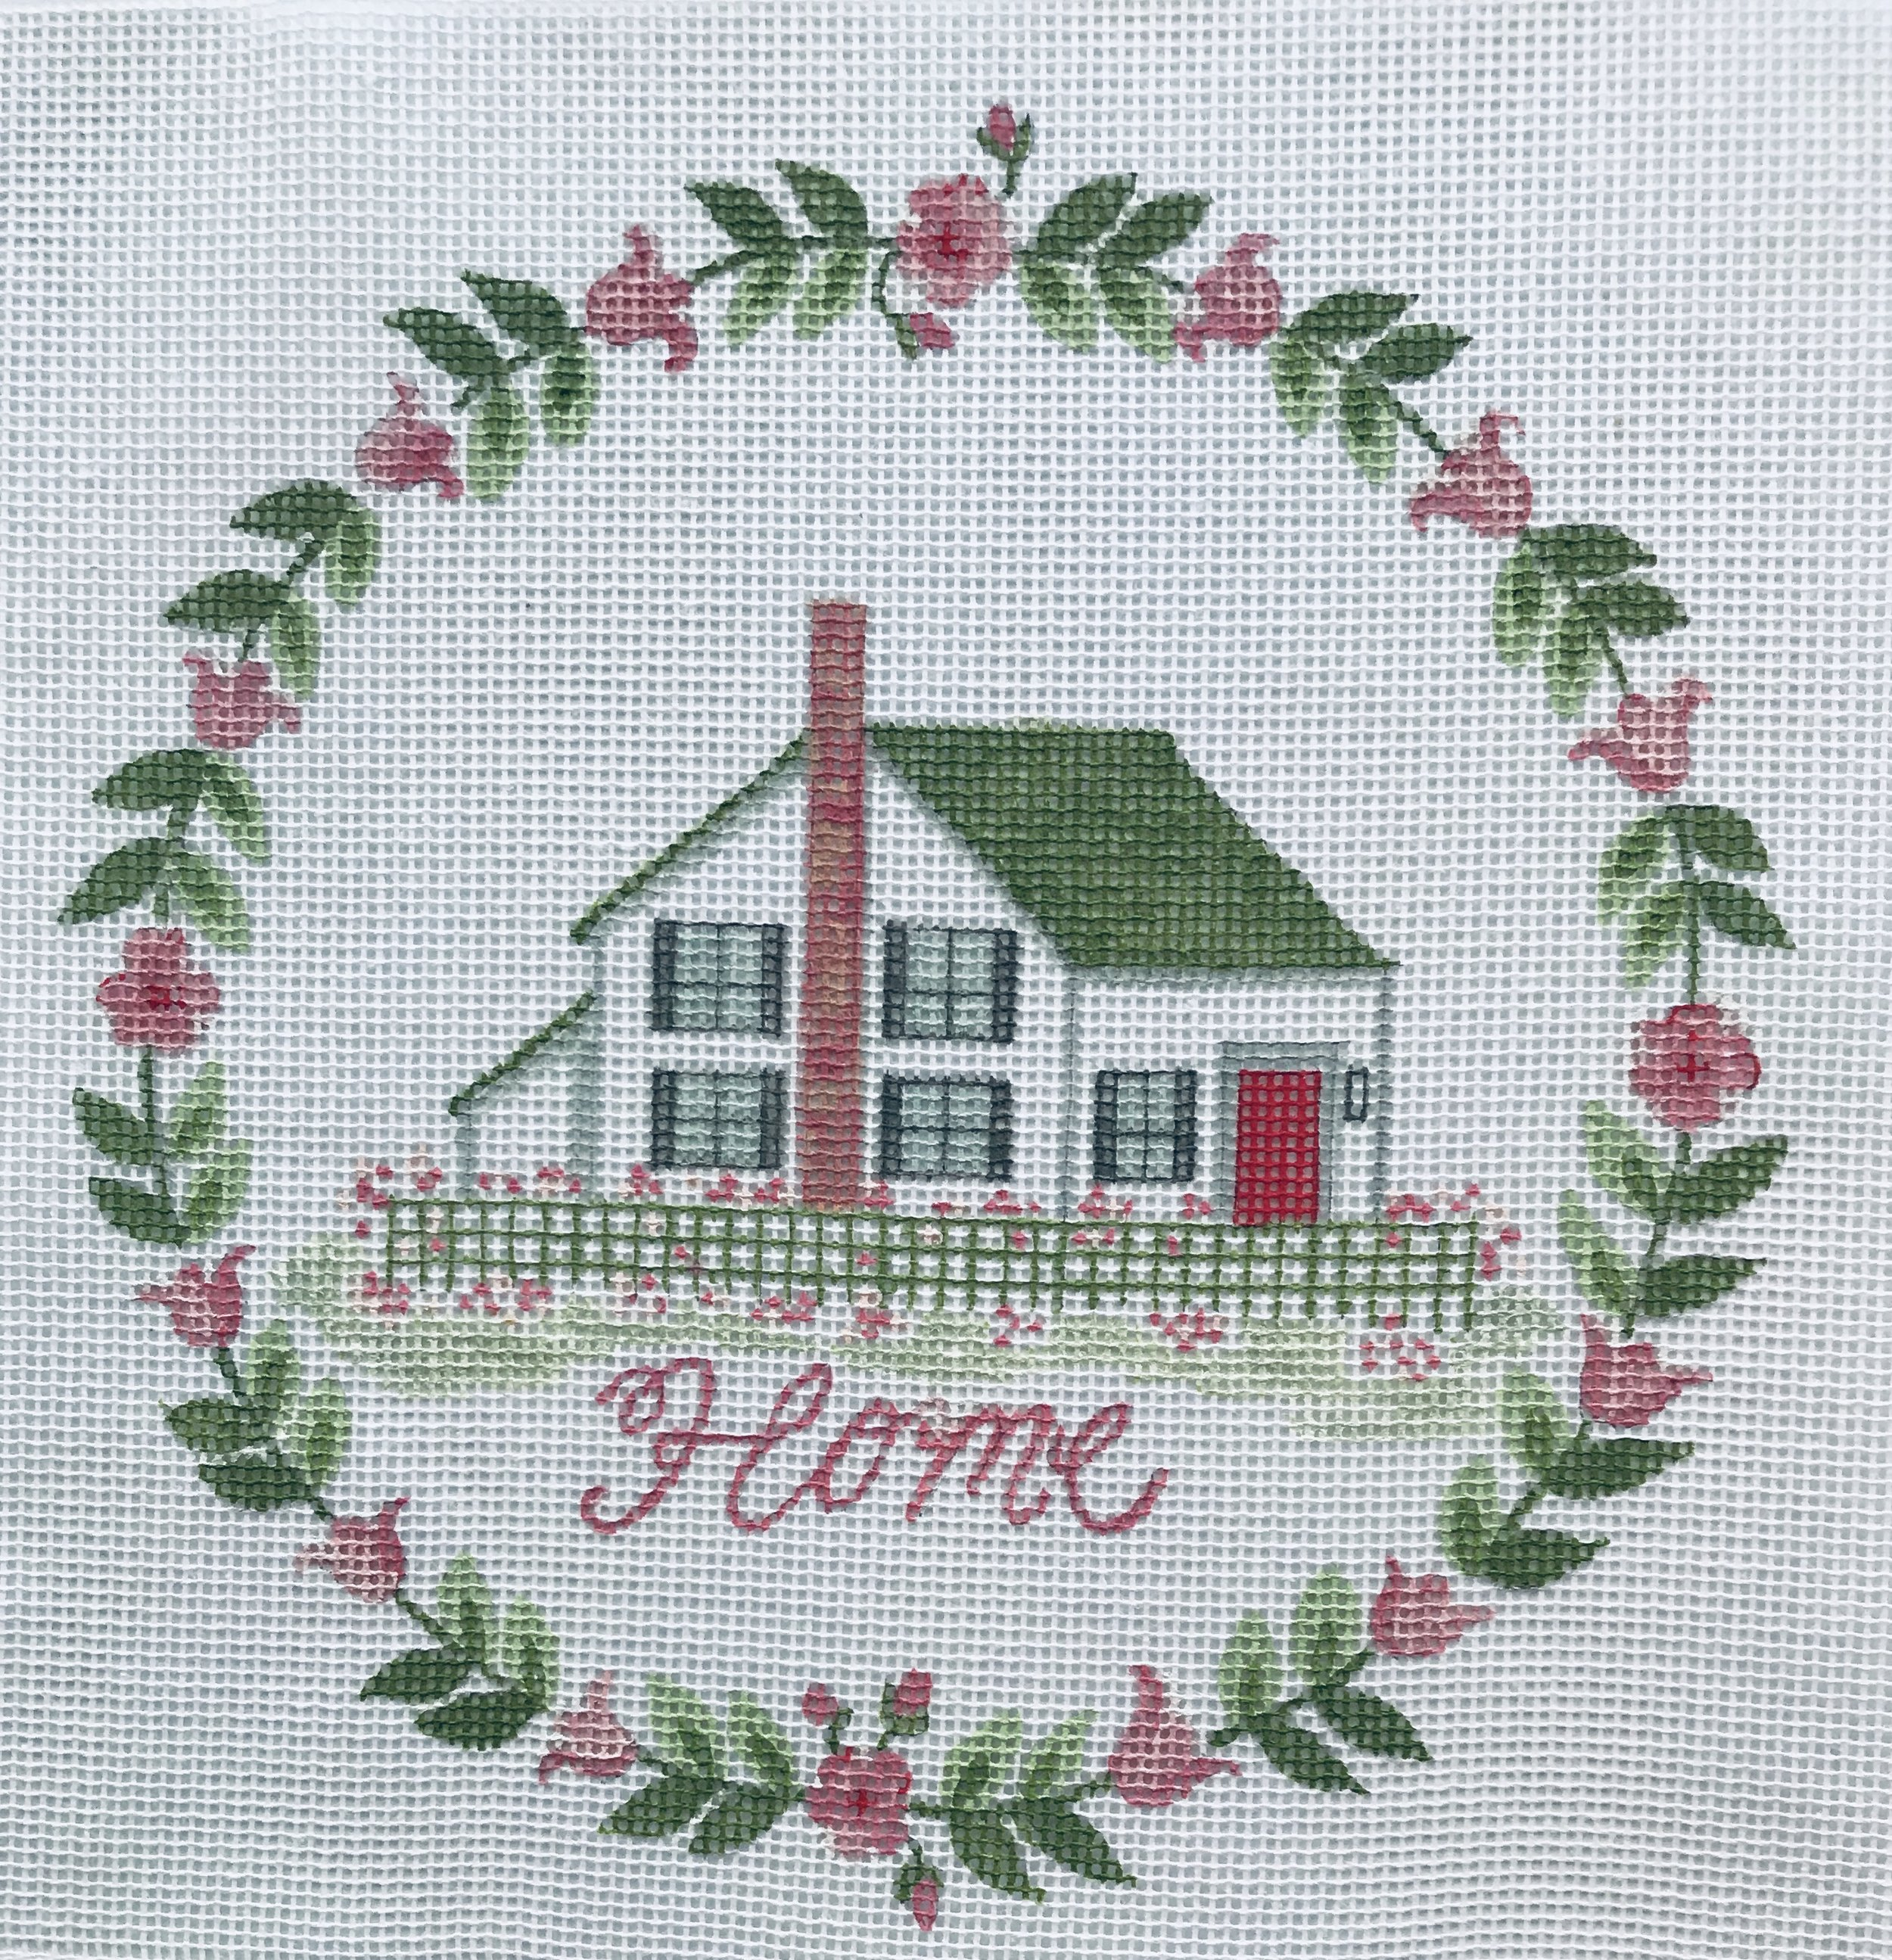 "Home - no ivy TSG15   8"" round on 14 mesh"